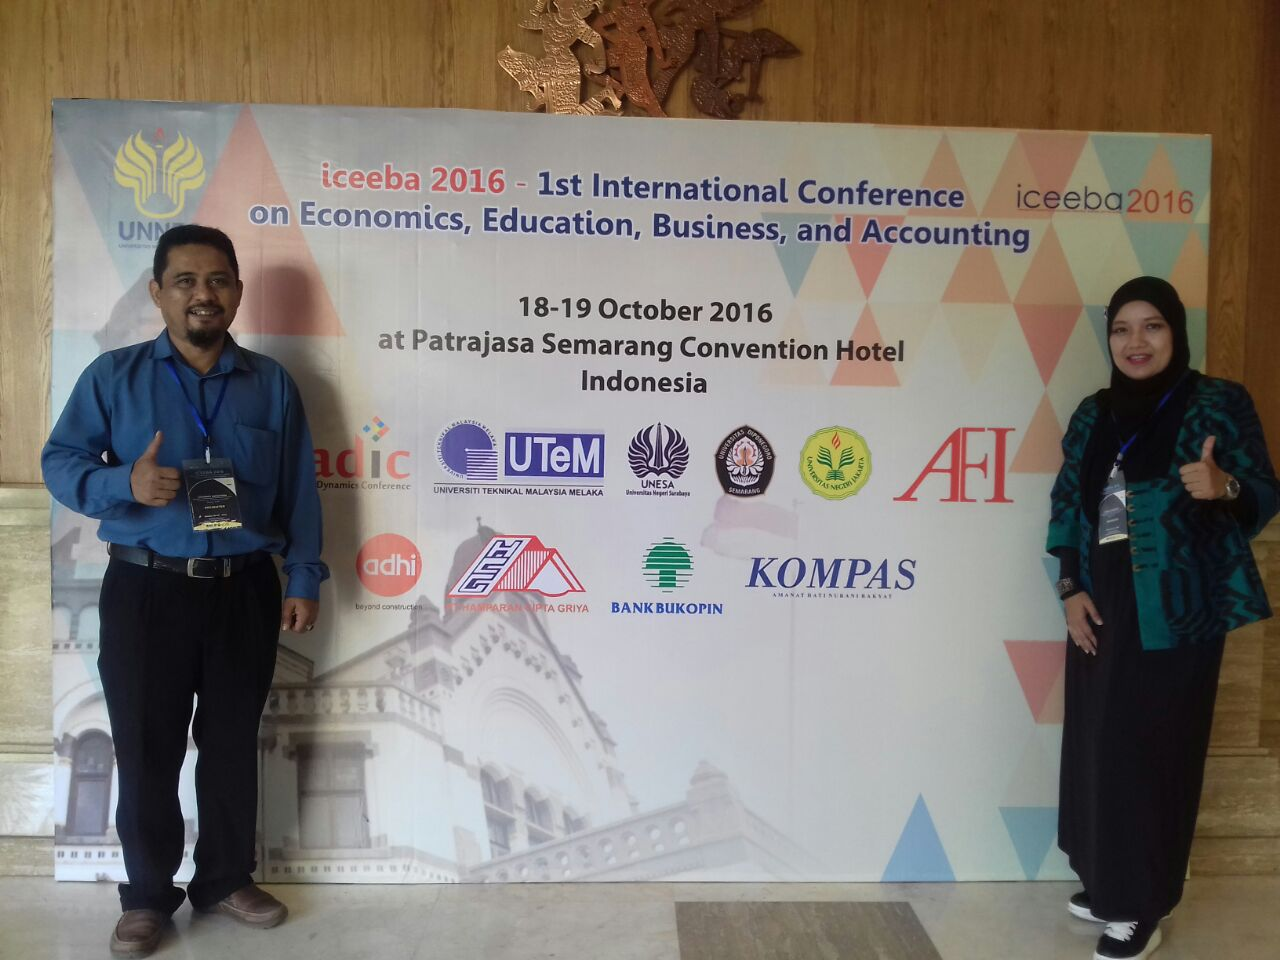 dosen-fakultas-ekonomi-unpab-menjadi-pemateri-dalam-kegiatan-international-conference-on-economic-education-business-and-accounting-iceeba-2016-di-semarang_89.jpg